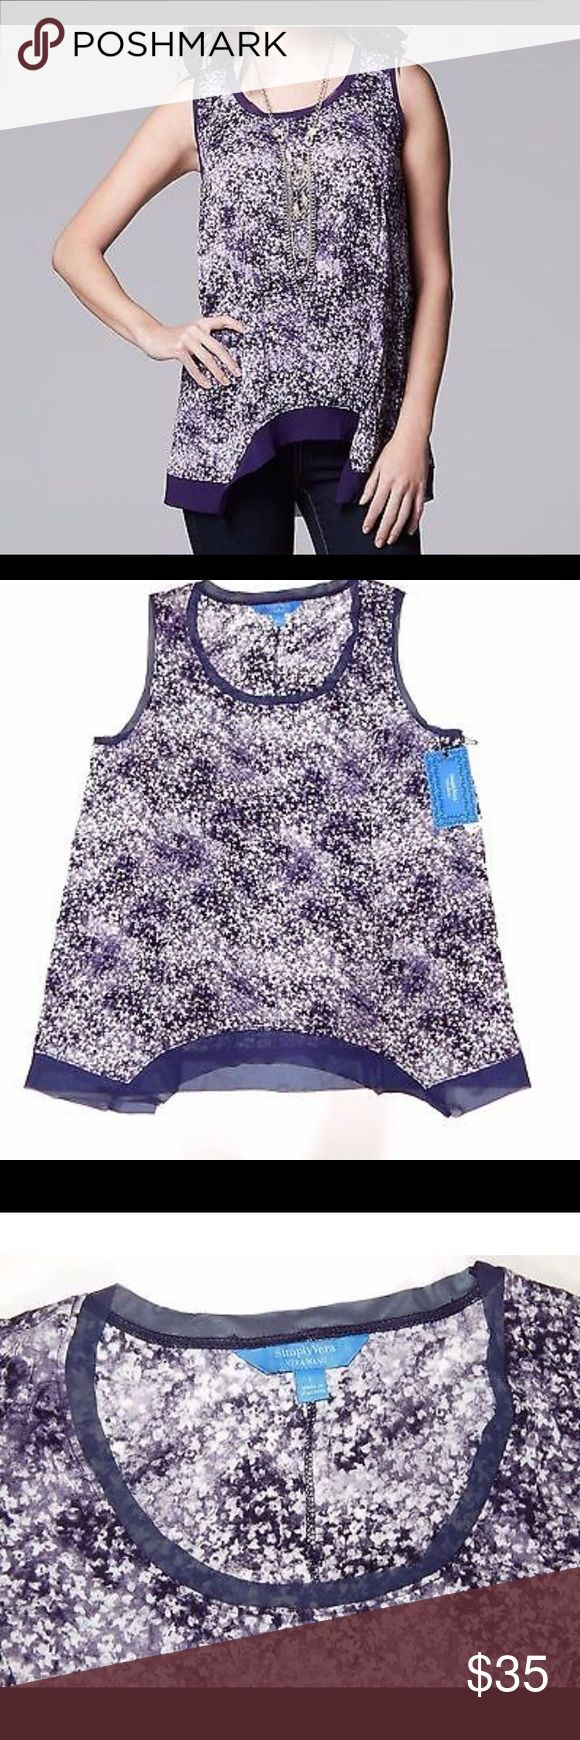 SIMPLY VERA WANG purple women's top Beautiful simply VERA WANG top new without tags ❤️makes me offers bundles discounts same day shipping ❤️happy purchase! Simply Vera Vera Wang Tops Camisoles